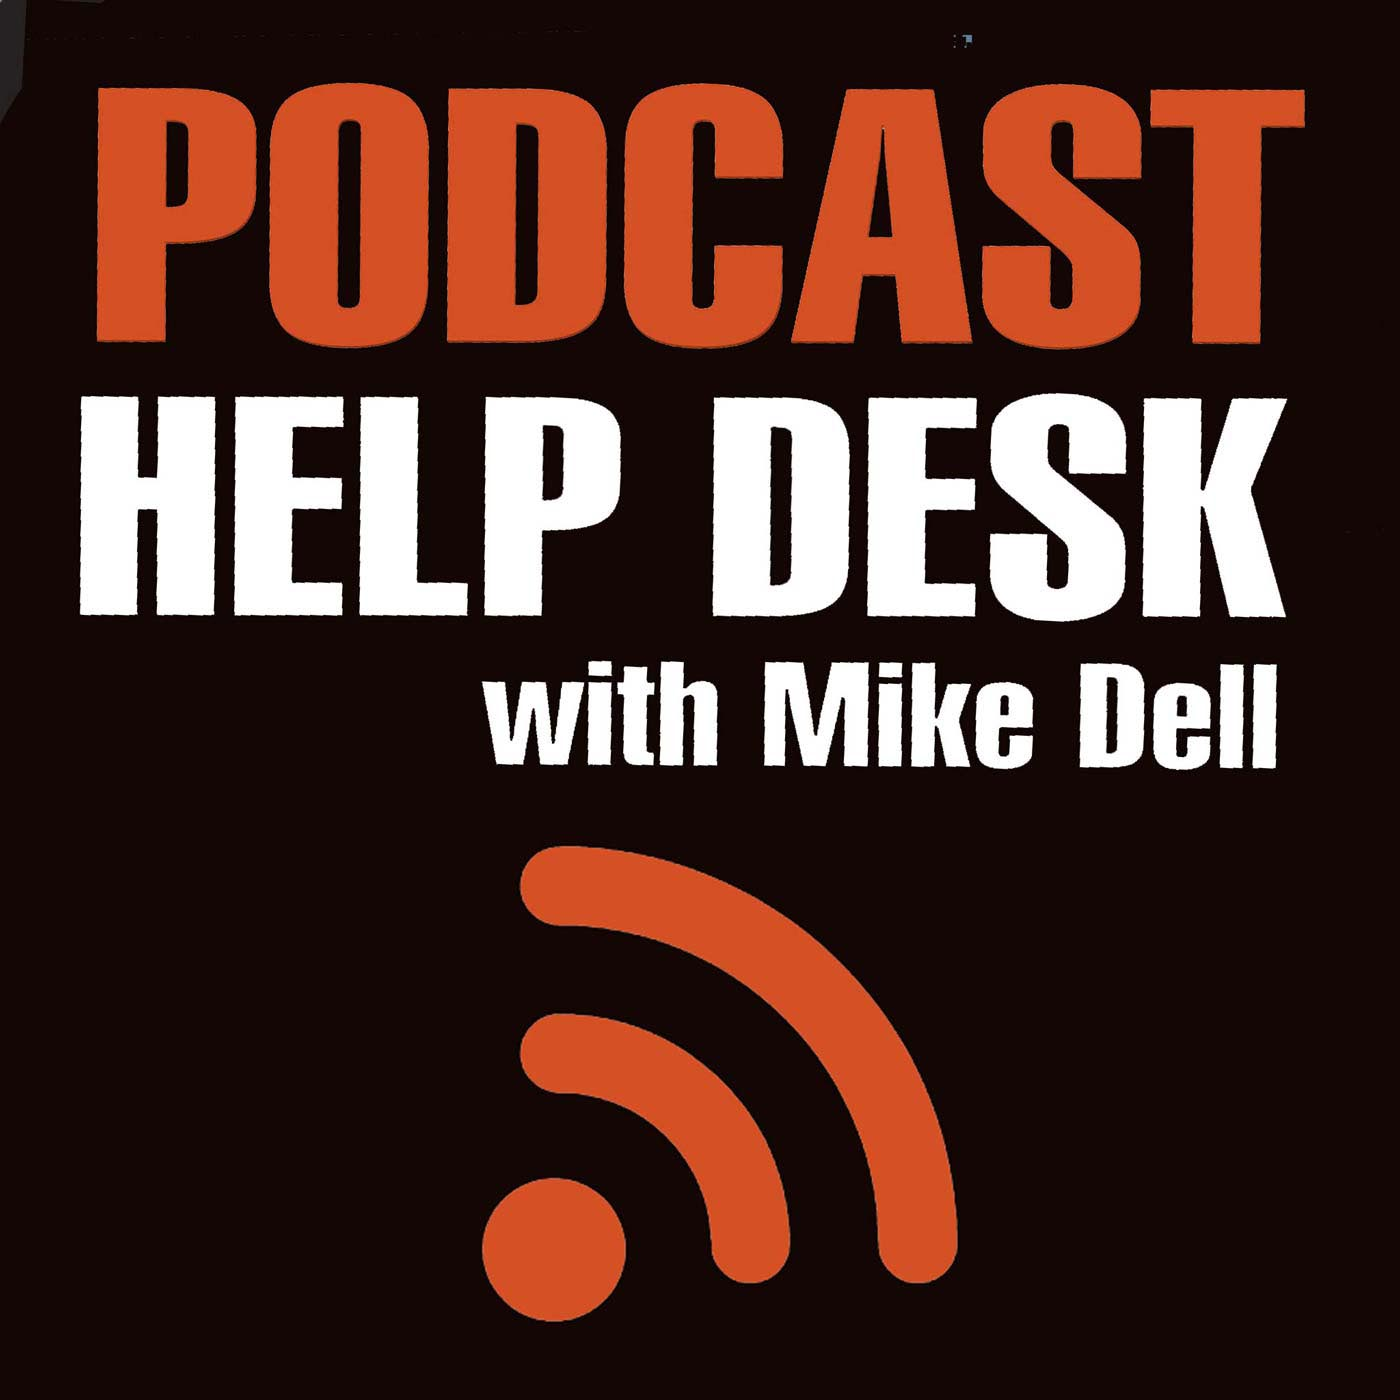 Podcast Help Desk